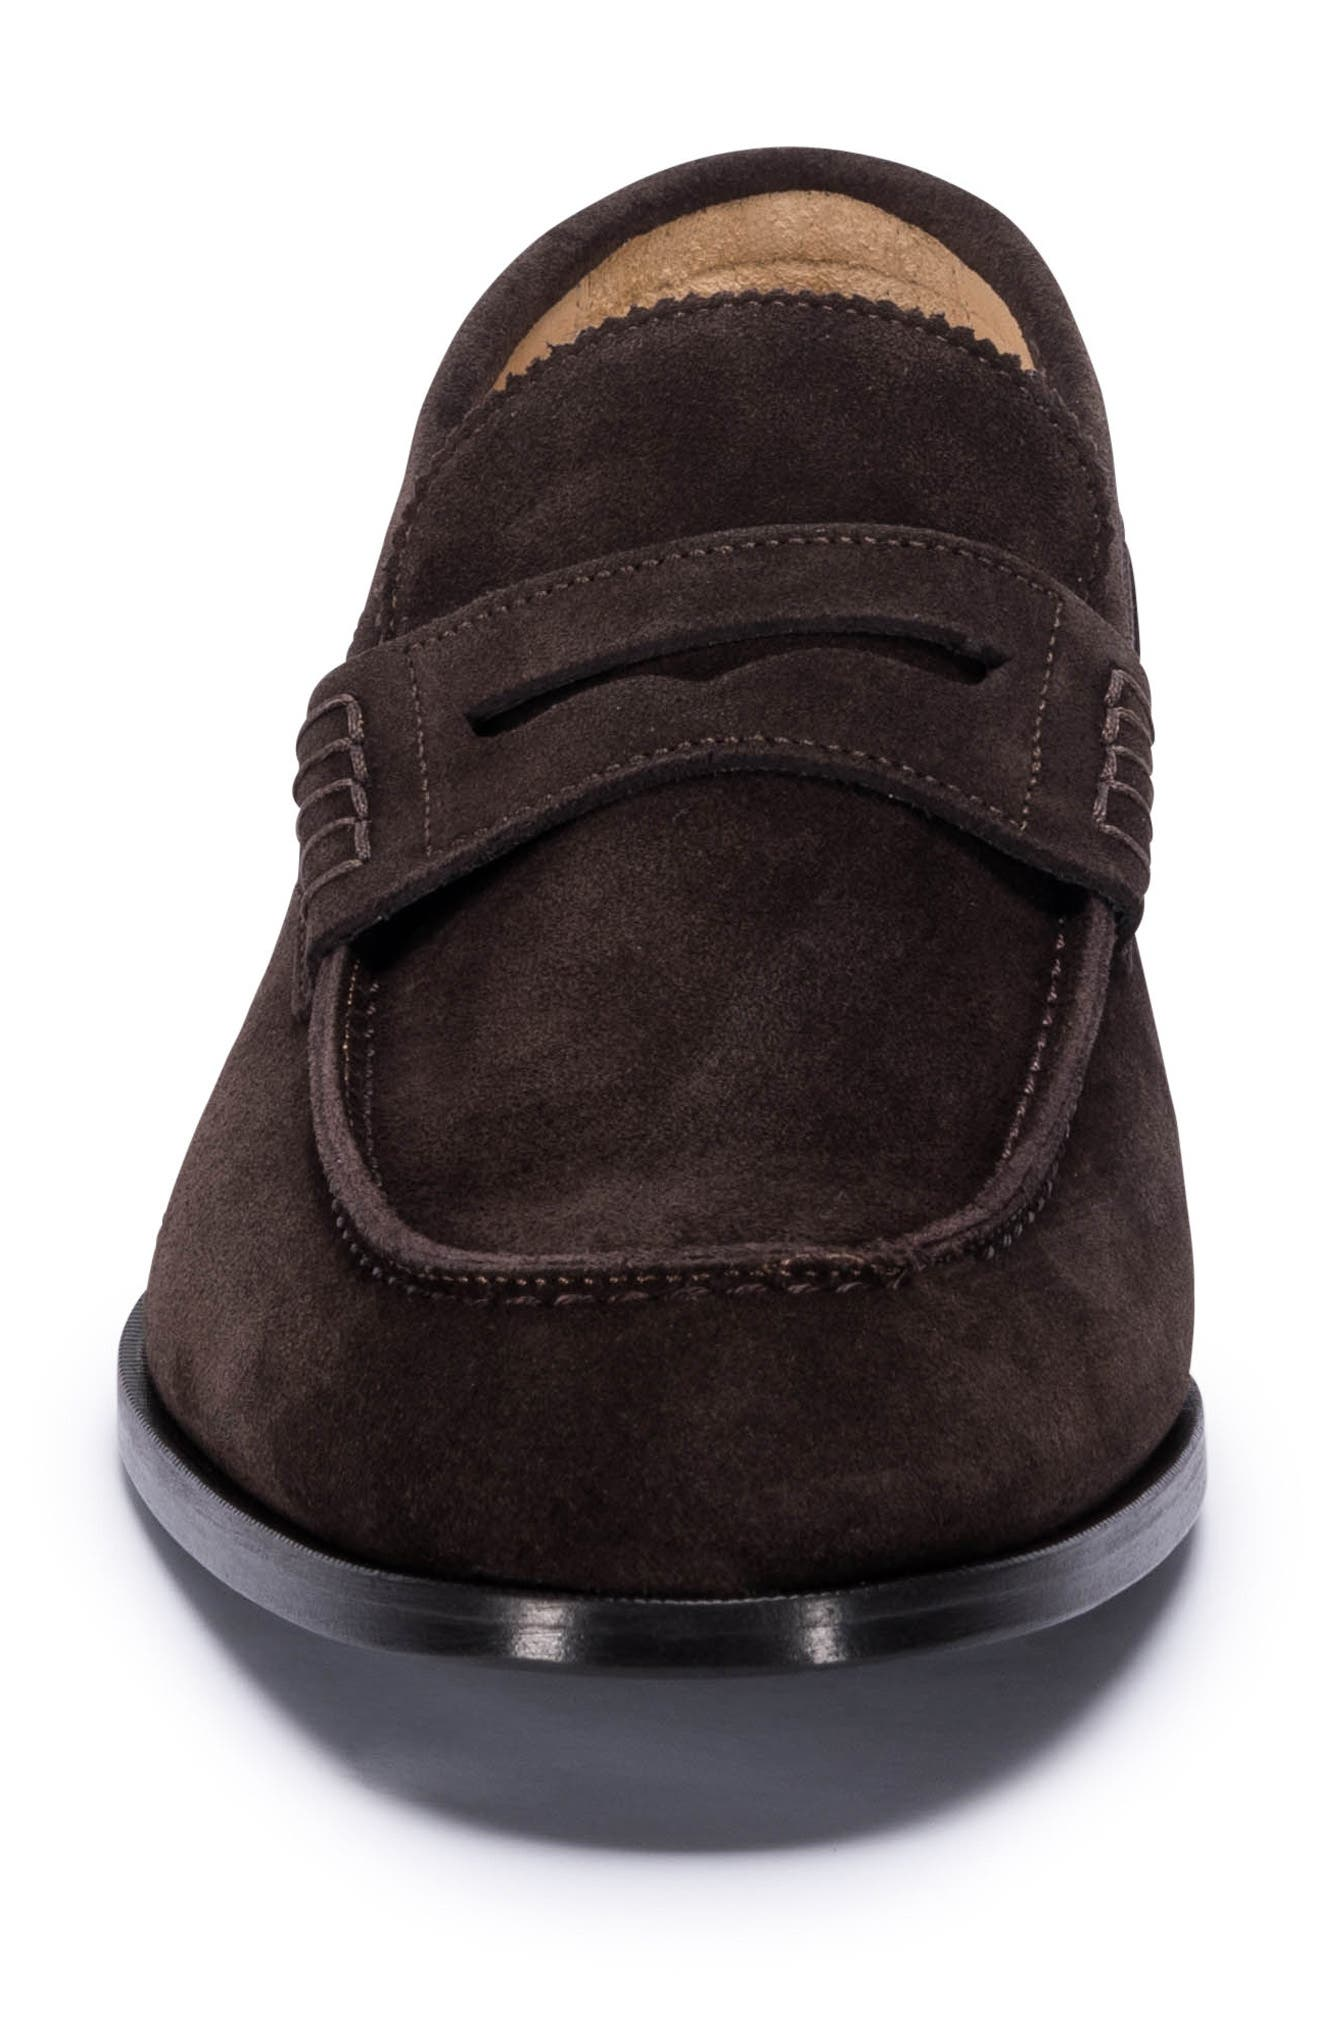 Torino Penny Loafer,                             Alternate thumbnail 4, color,                             BROWN SUEDE